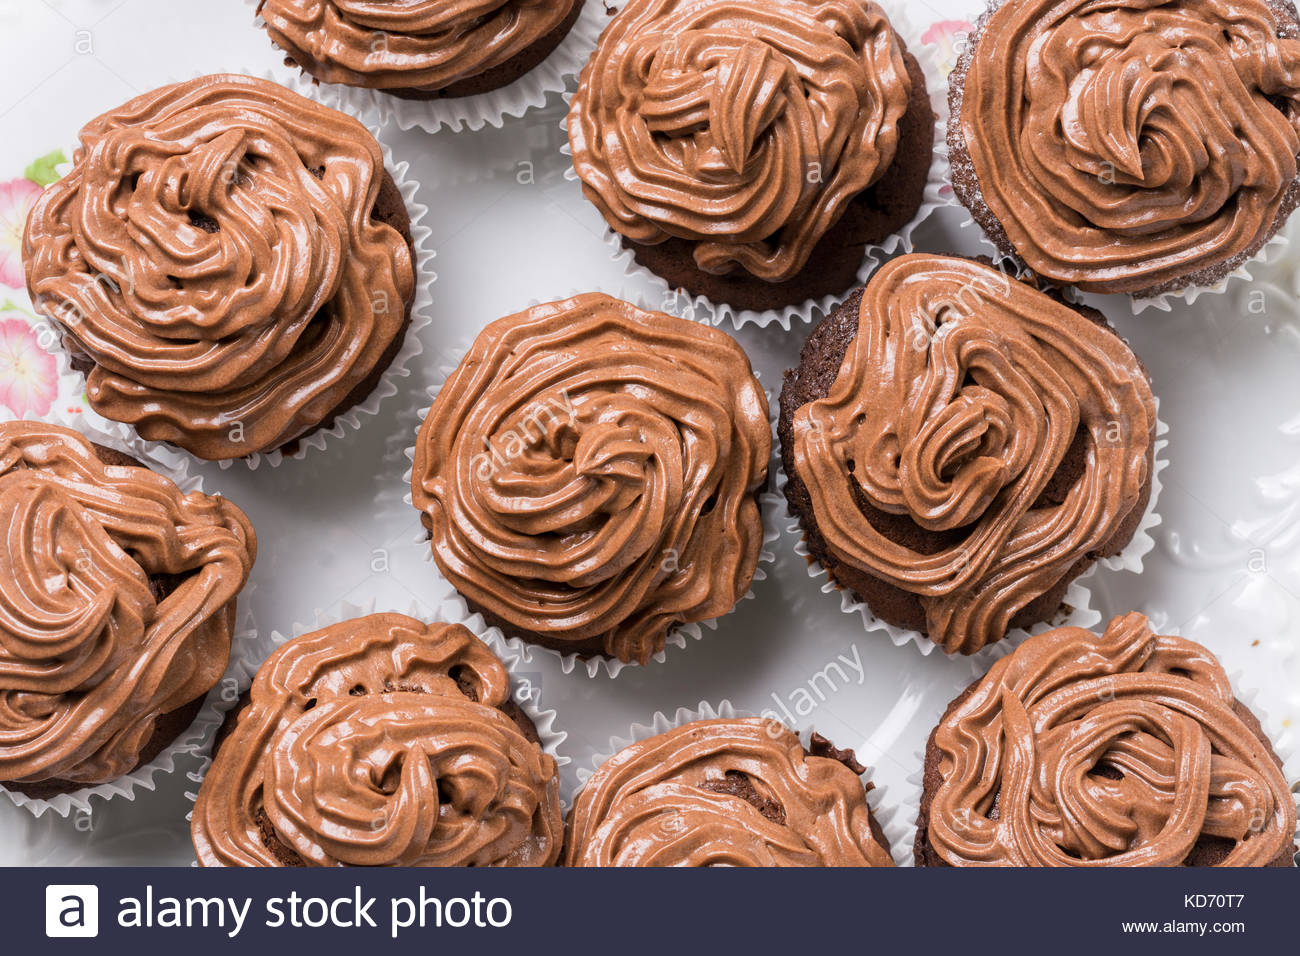 Flat lay above full plate of chocolate cup cakes with ganache chocolate cream. - Stock Image